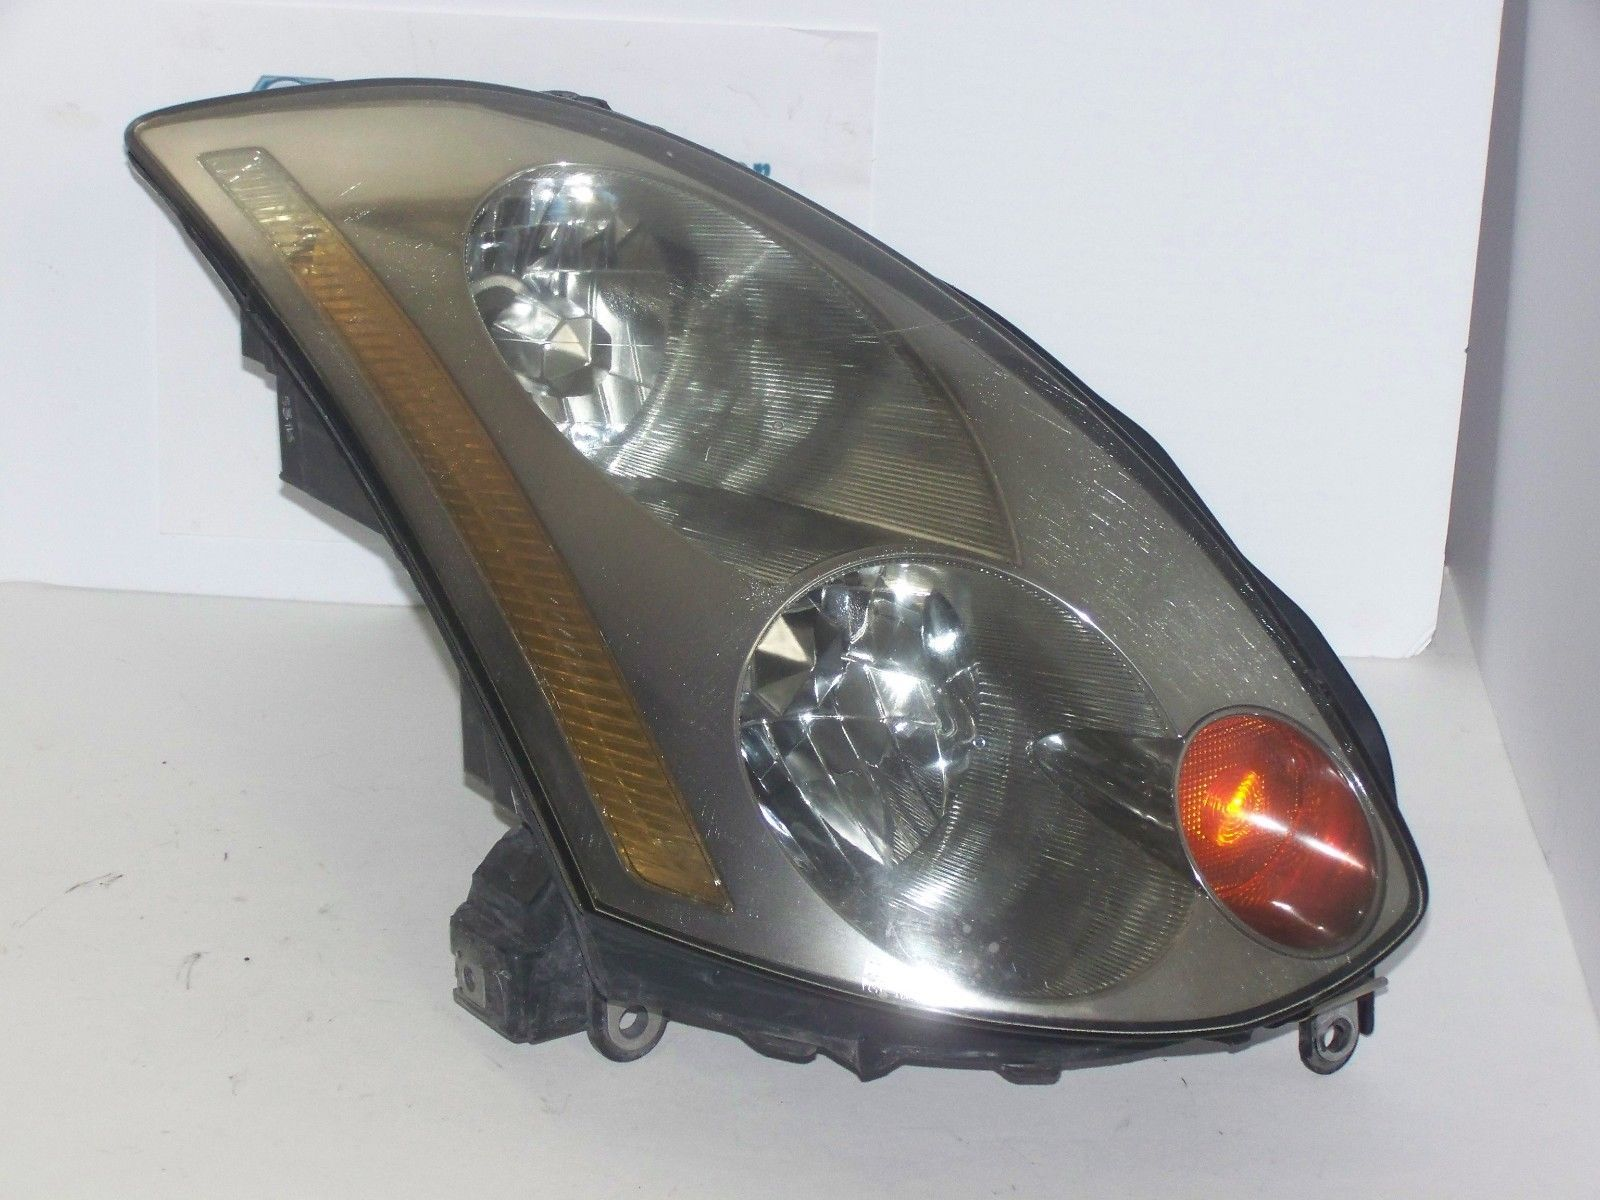 03 05 infiniti g35 coupe convertible hid headlight assembly right rh oem rightchoiceharbor  [ 1600 x 1200 Pixel ]